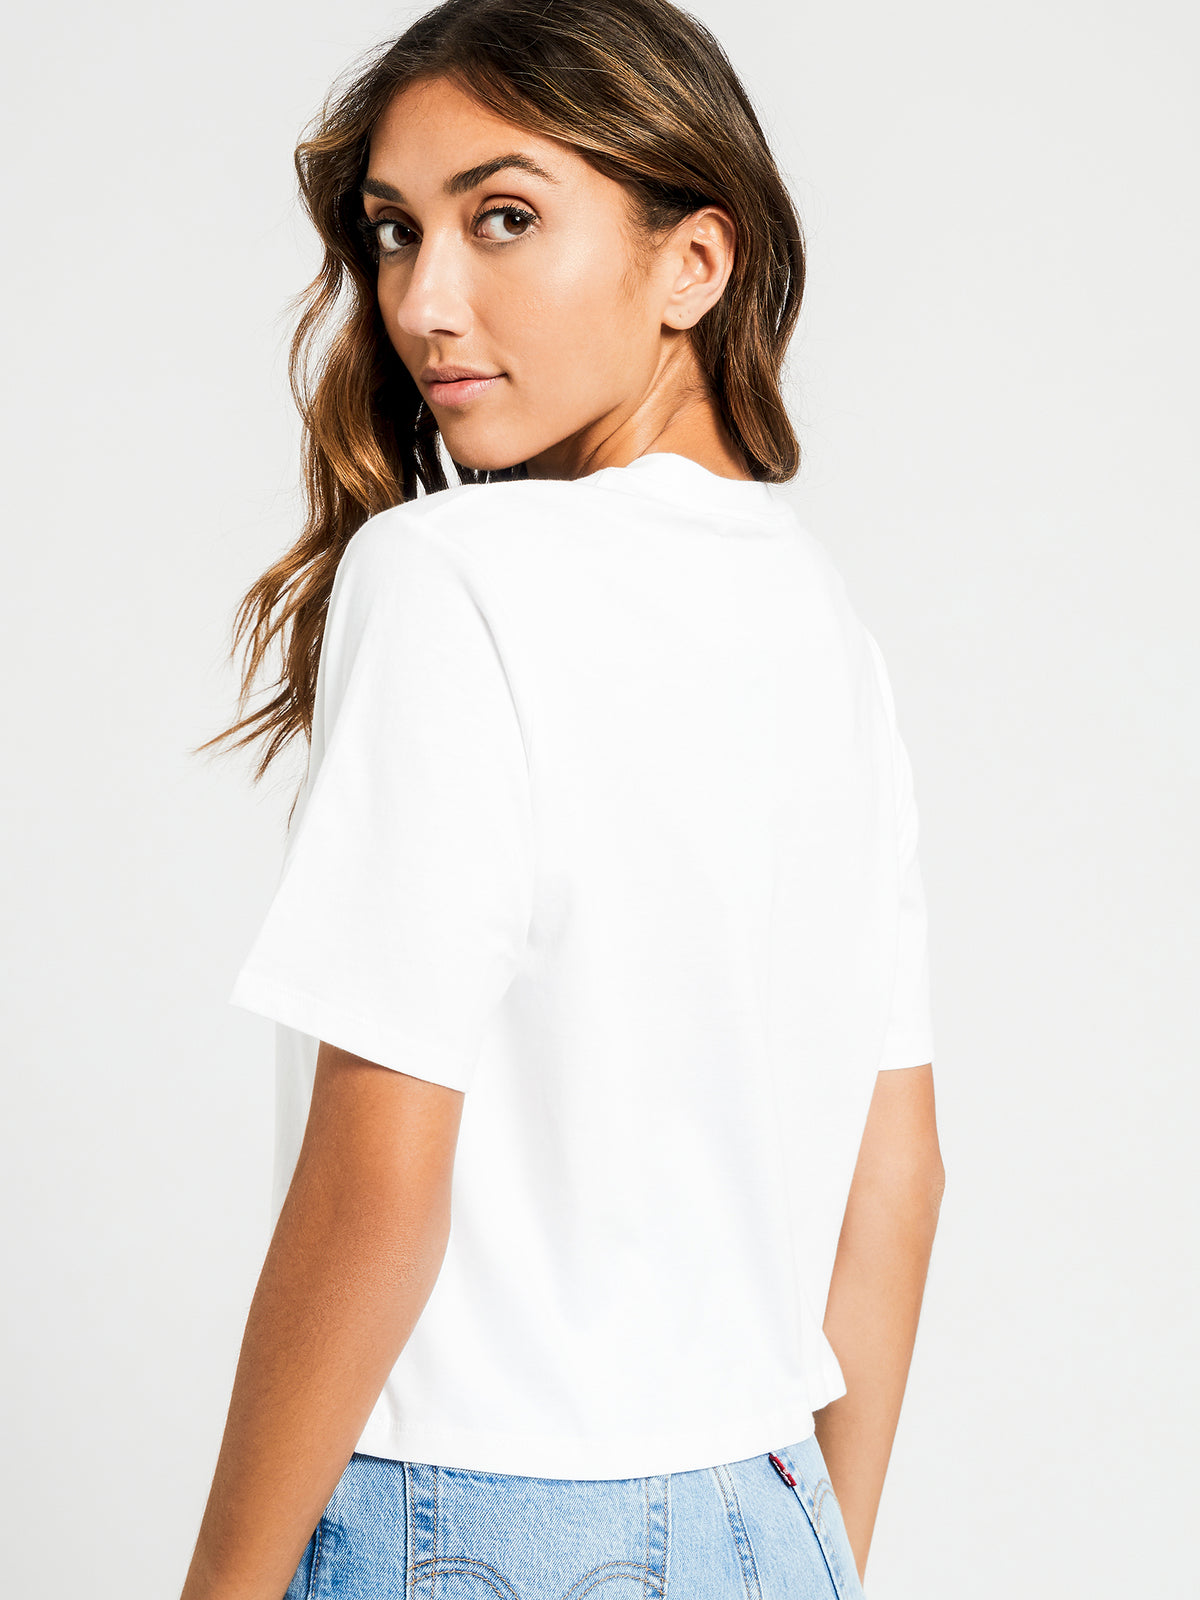 Graphic Parker T-Shirt in Puff White